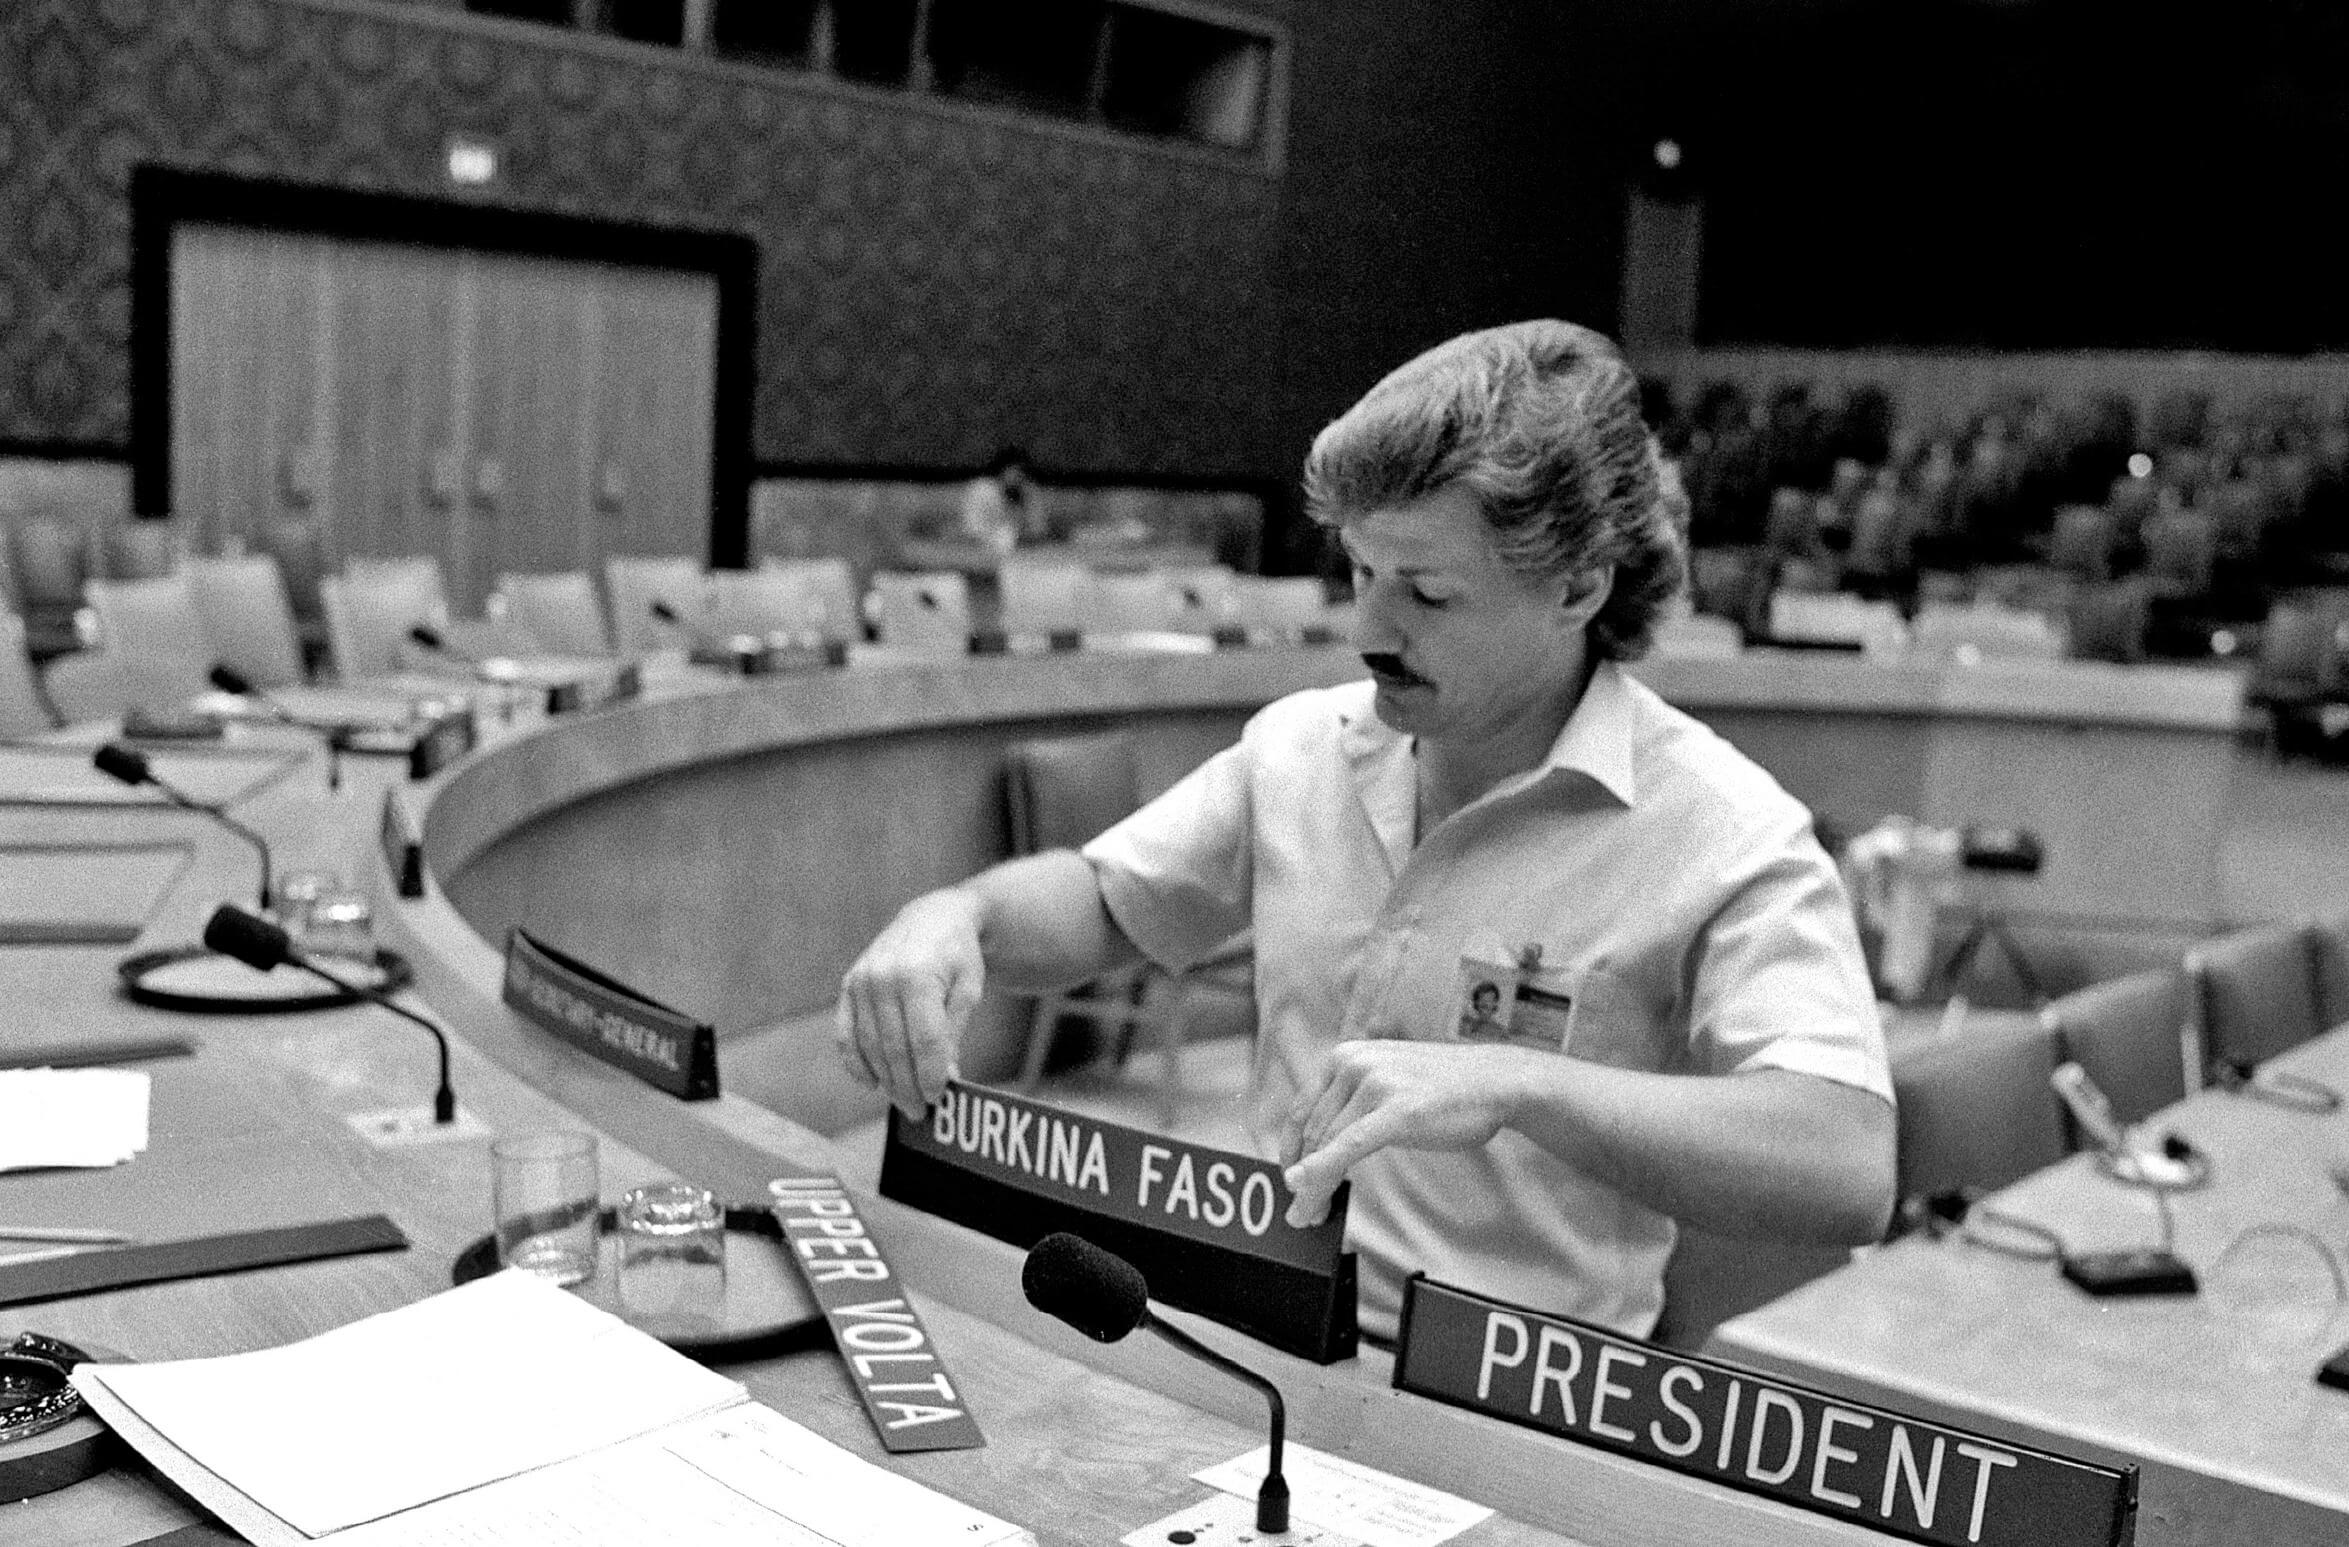 The name of Upper Volta is changed to Burkina Faso in the UN Security Council, 1984. © United Nations Photo / Flickr